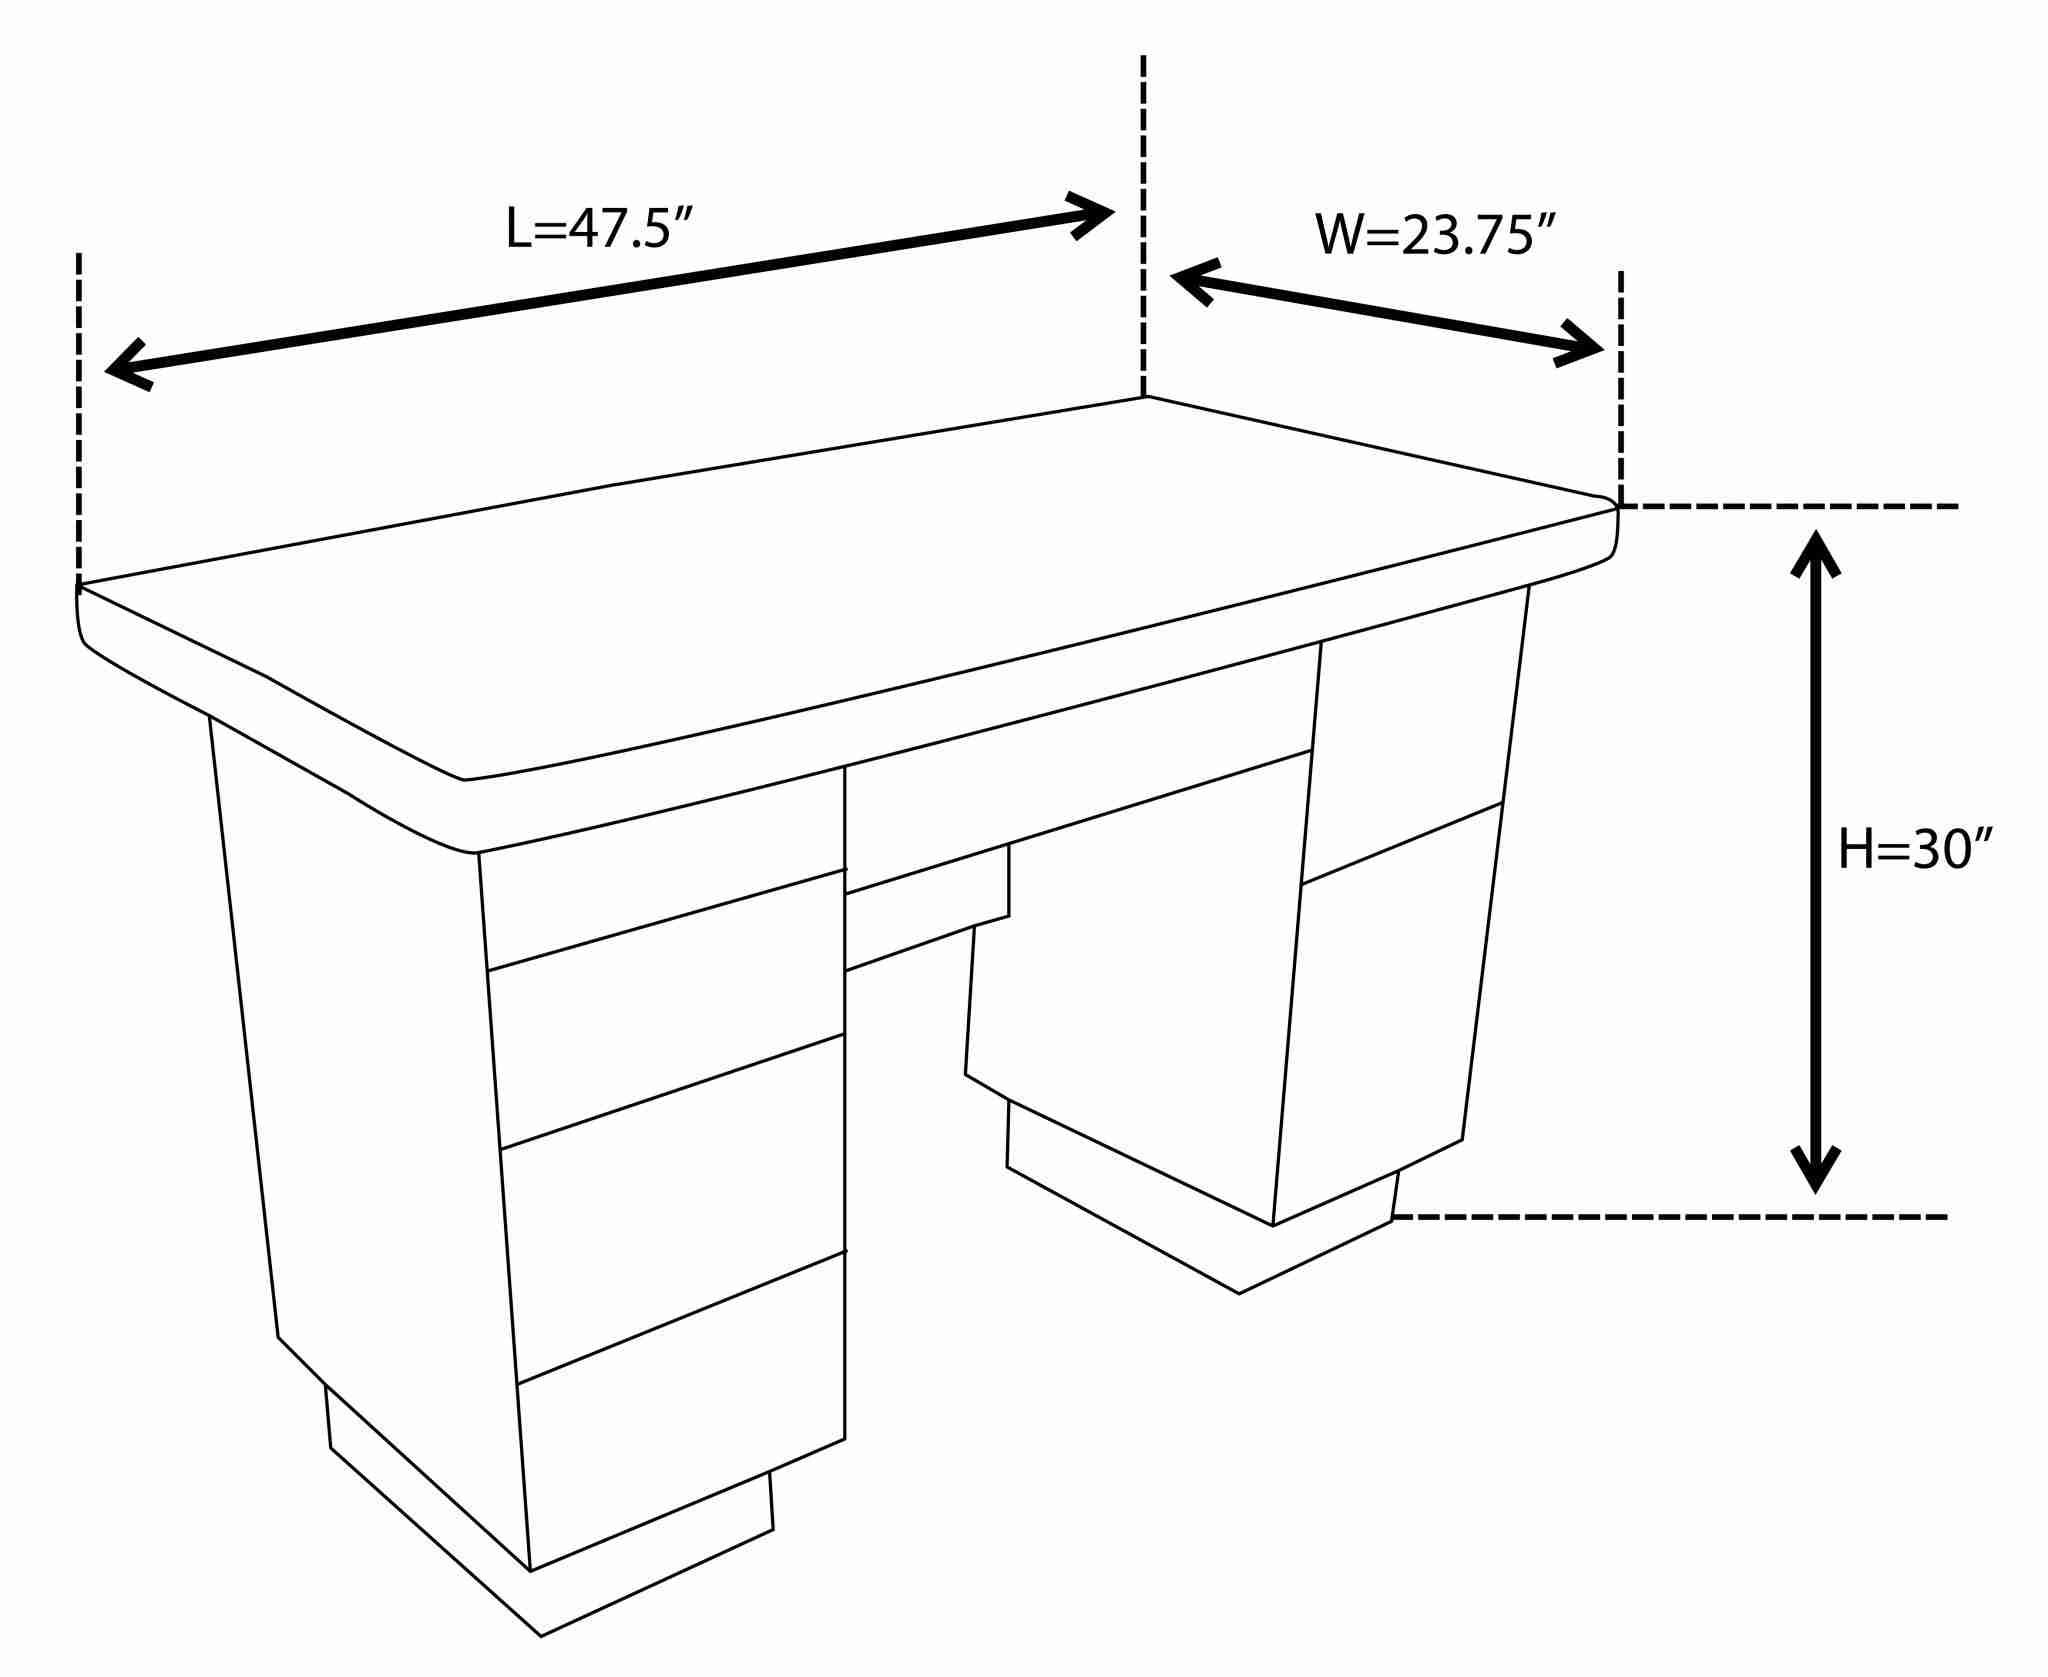 27 Exclusif Dimension Table In 2020 With Images Office Table